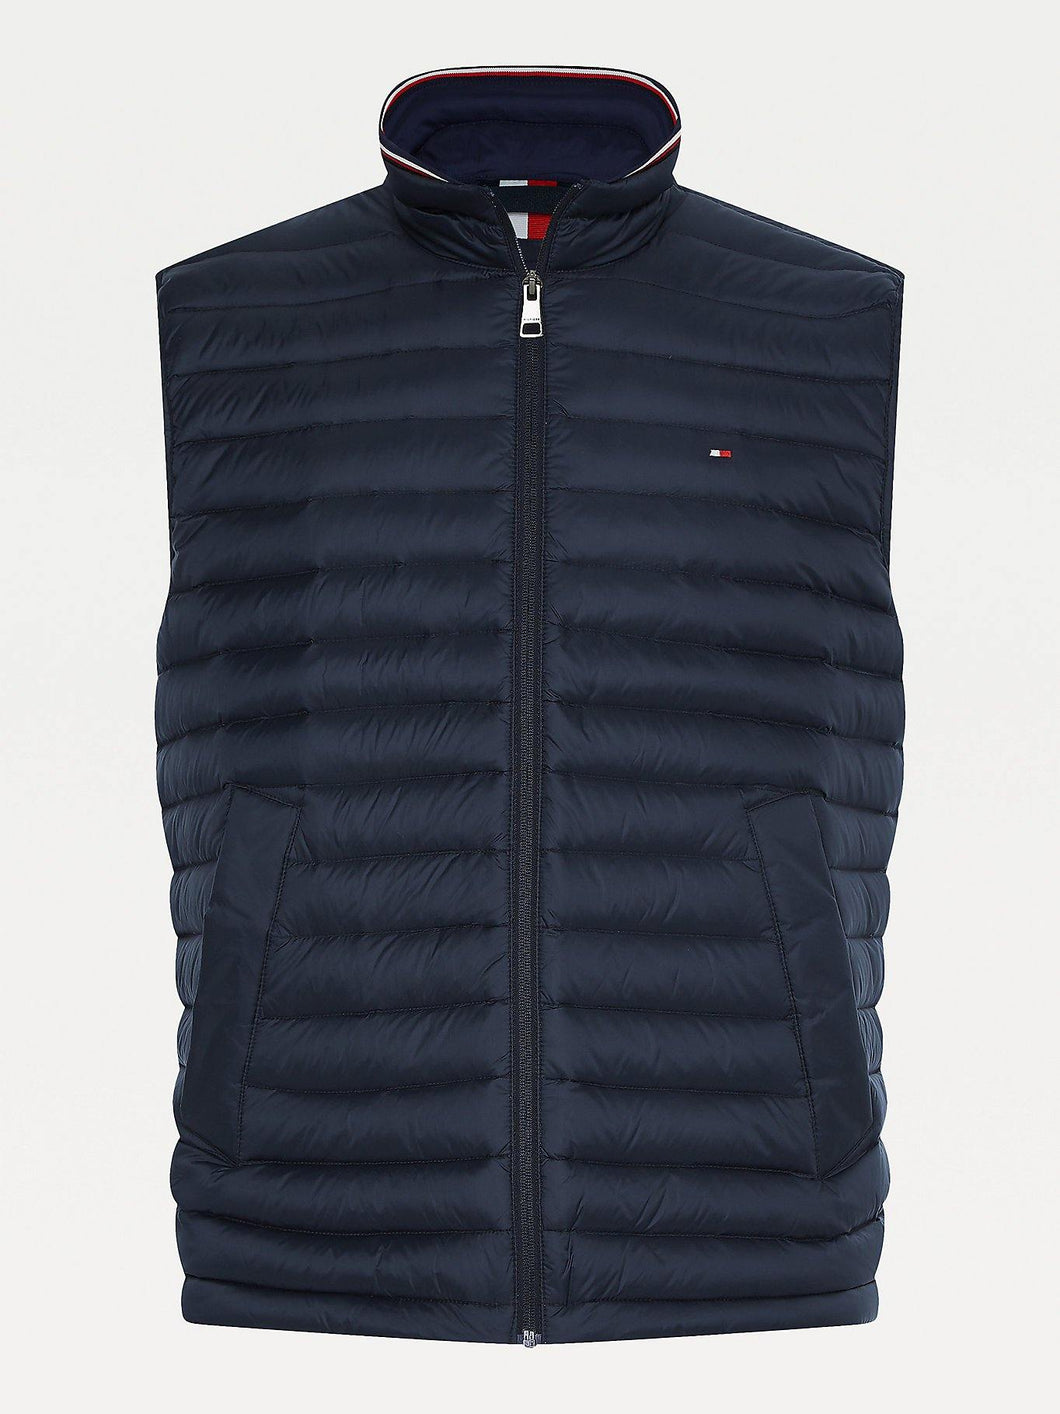 Tommy Hilfiger Packable Down Vest - JR MCMAHON EXCLUSIVE MENSWEAR